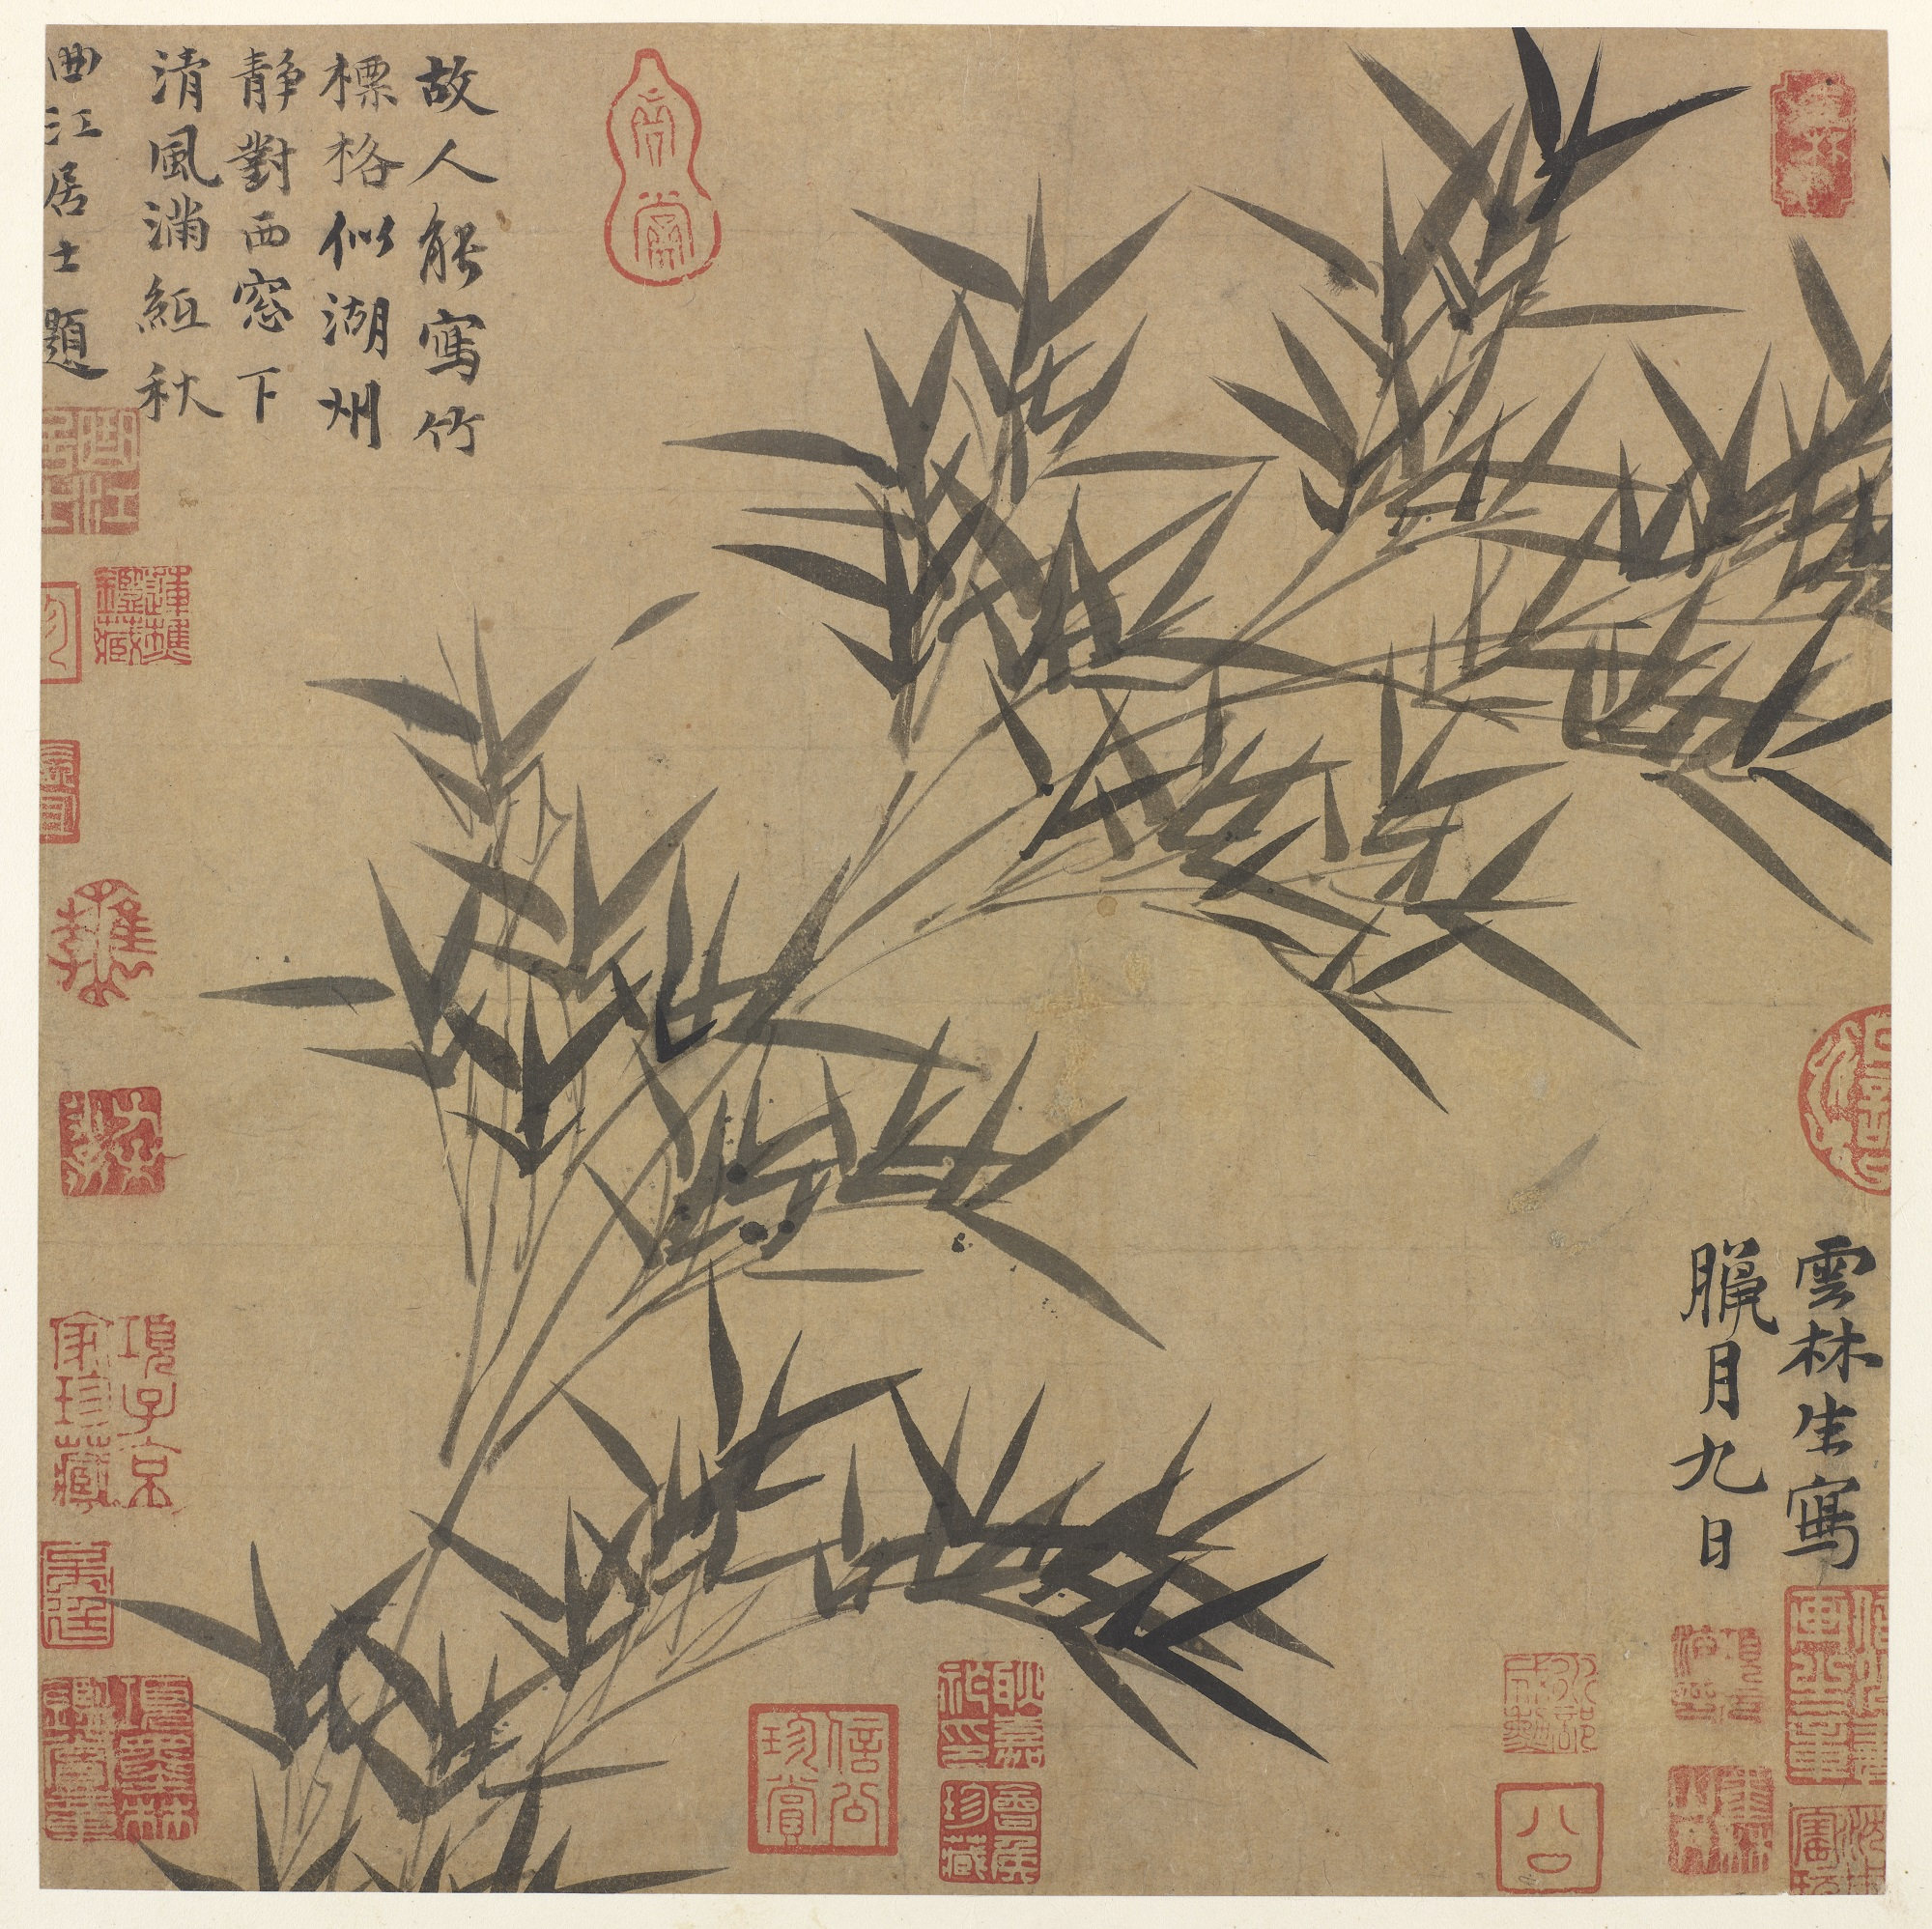 a bamboo branch against a plain background with chinese characters